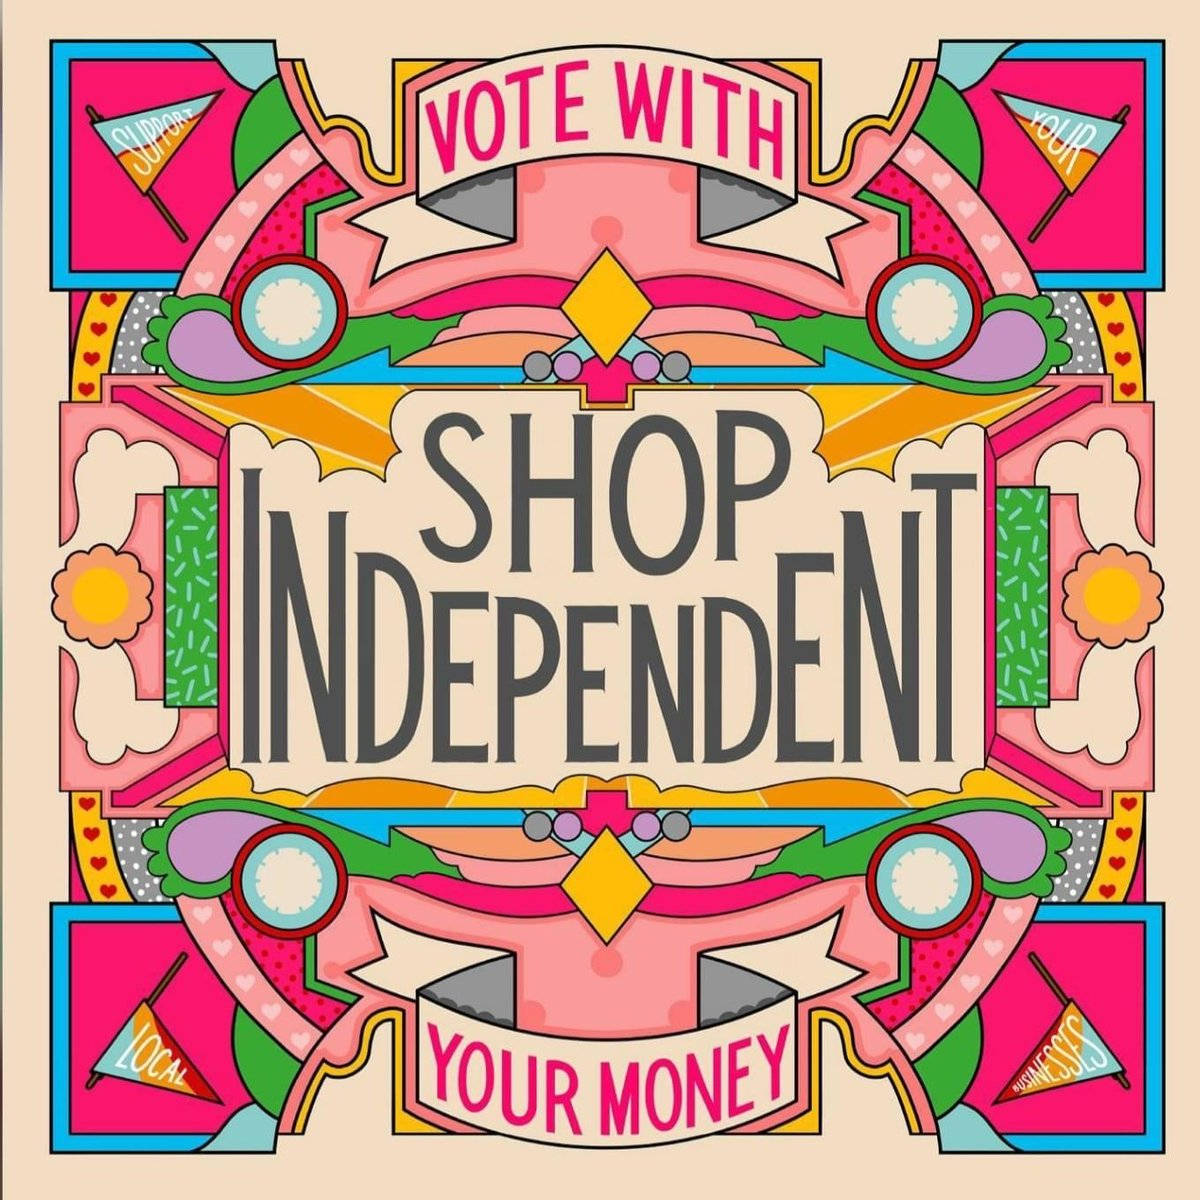 As the shops open please remember to support independent companies who need your help during this uncertain time 💜